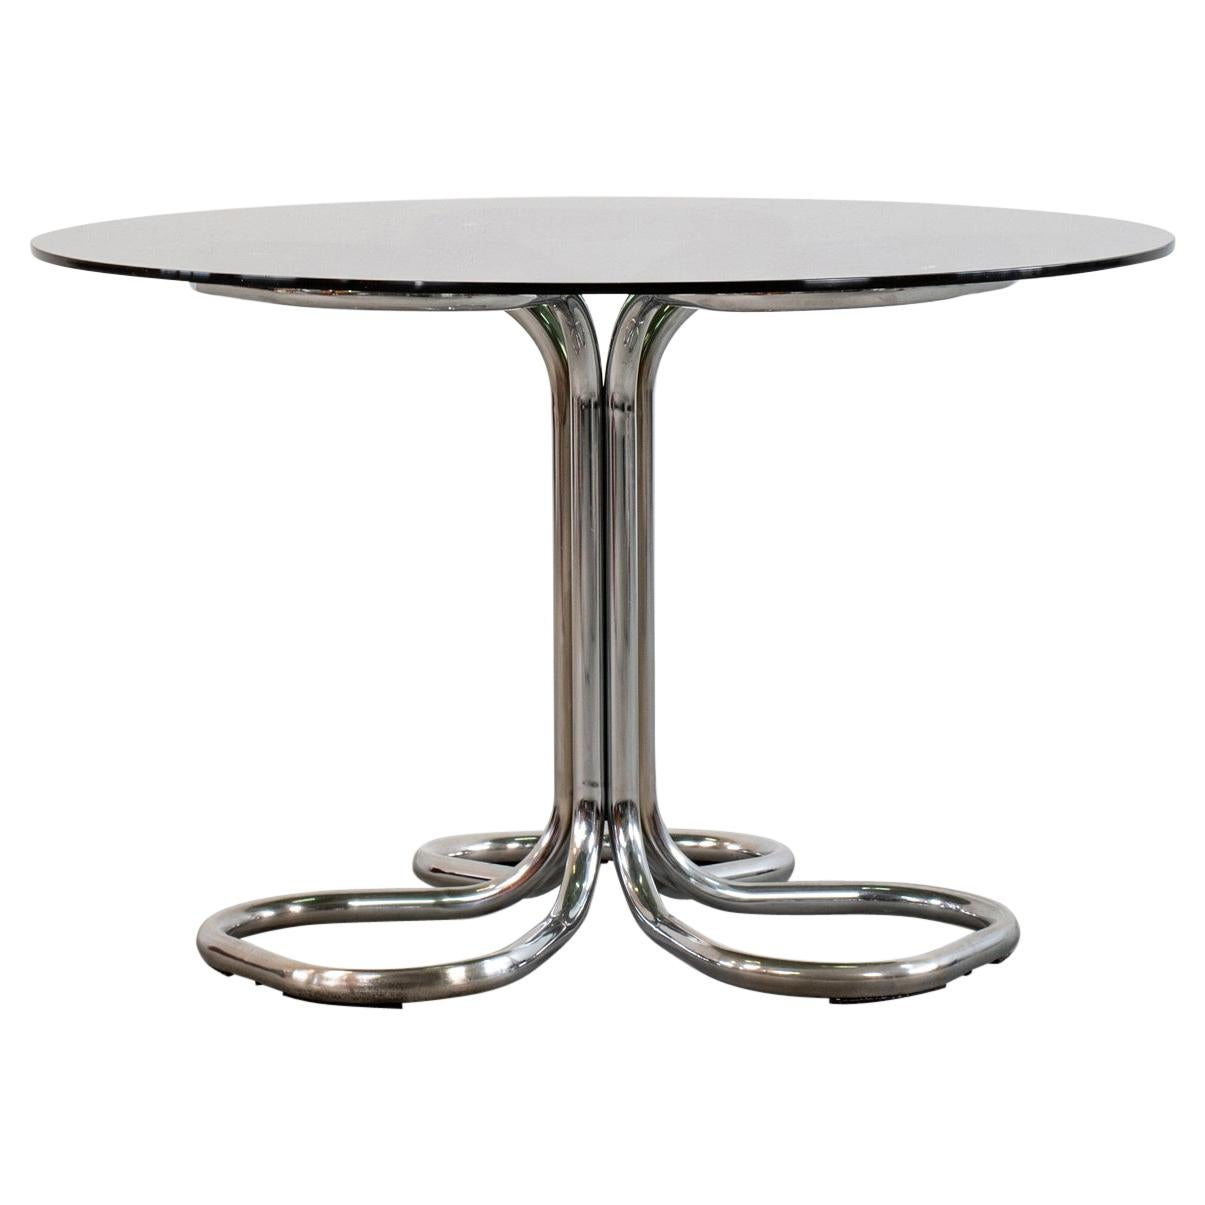 Giotto Stoppino Dining Round Table in Steel and Glass Italian Manufacture, 1970s